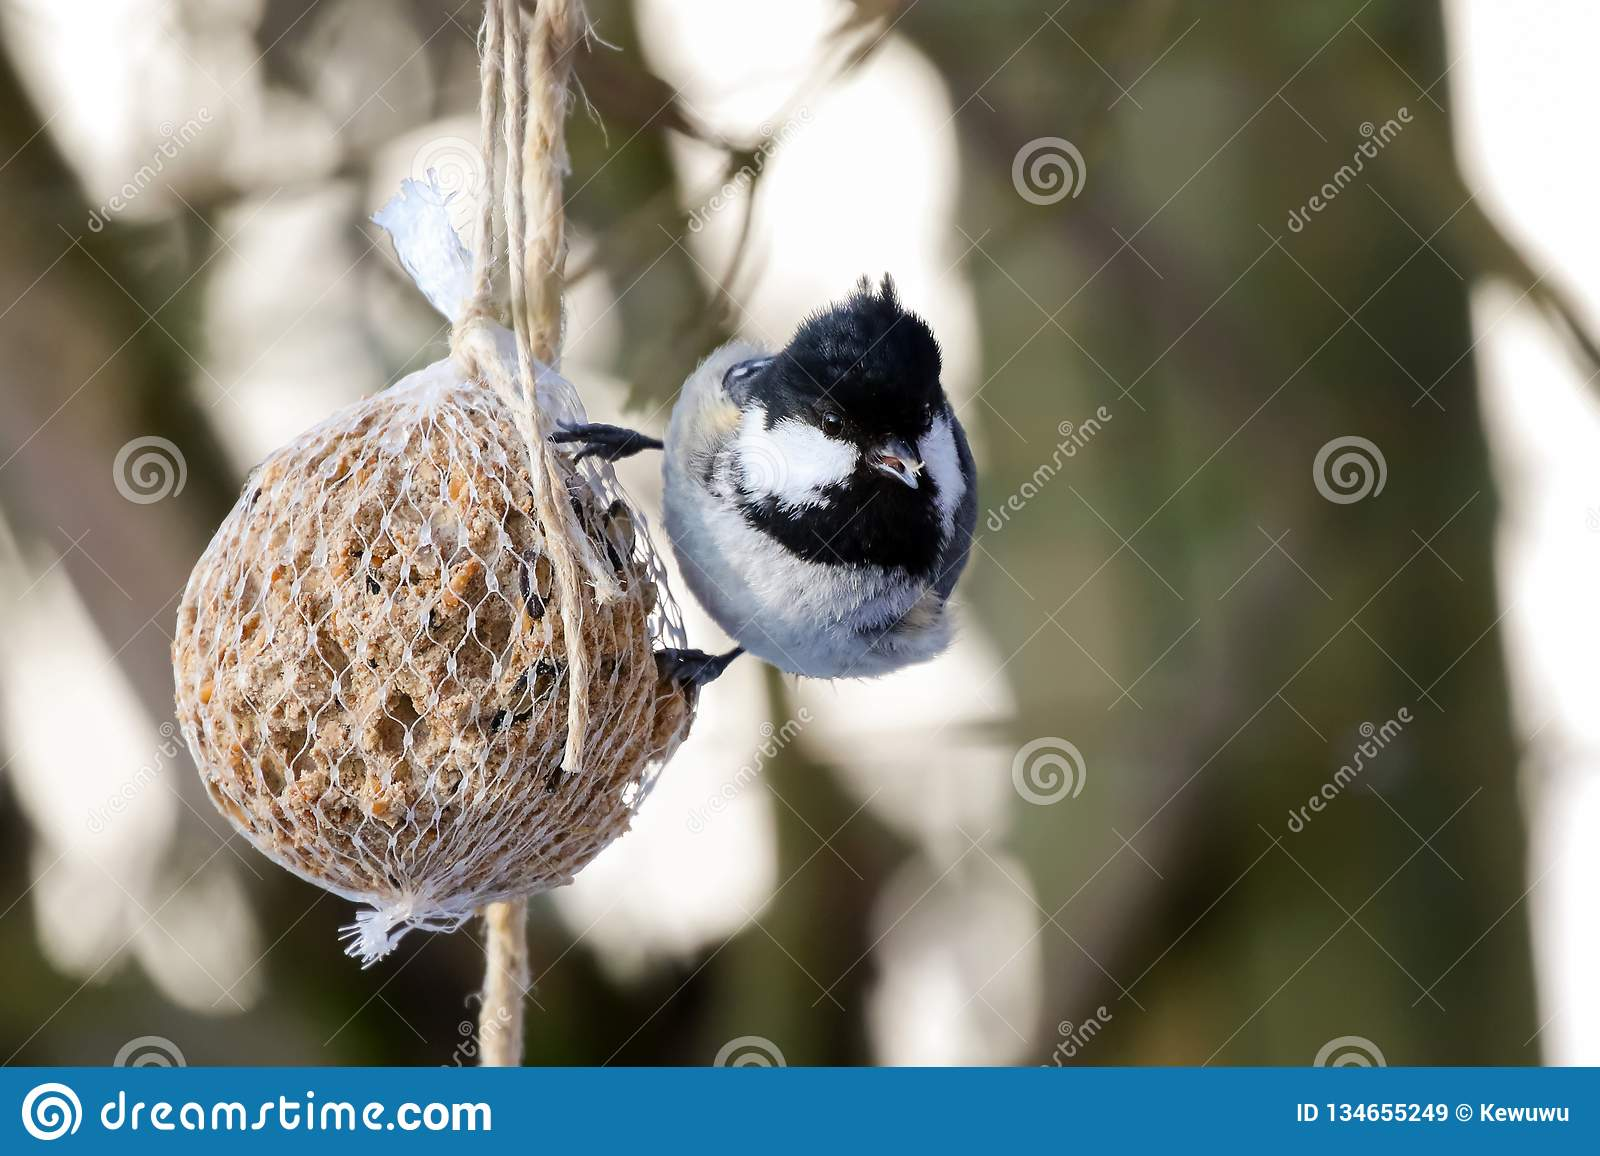 Coal tit bird on nuts seeds in meshed bag. Small passerine in grey black on suet treat feeder